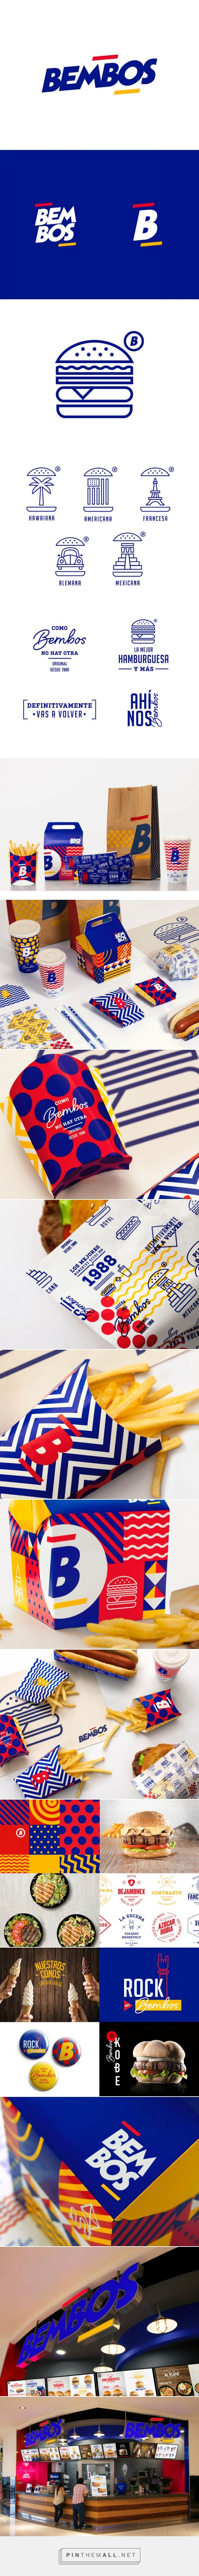 Bembos fastfood packaging designed by Infinito Consultores - http://www.packagingoftheworld.com/2015/09/bembos.html